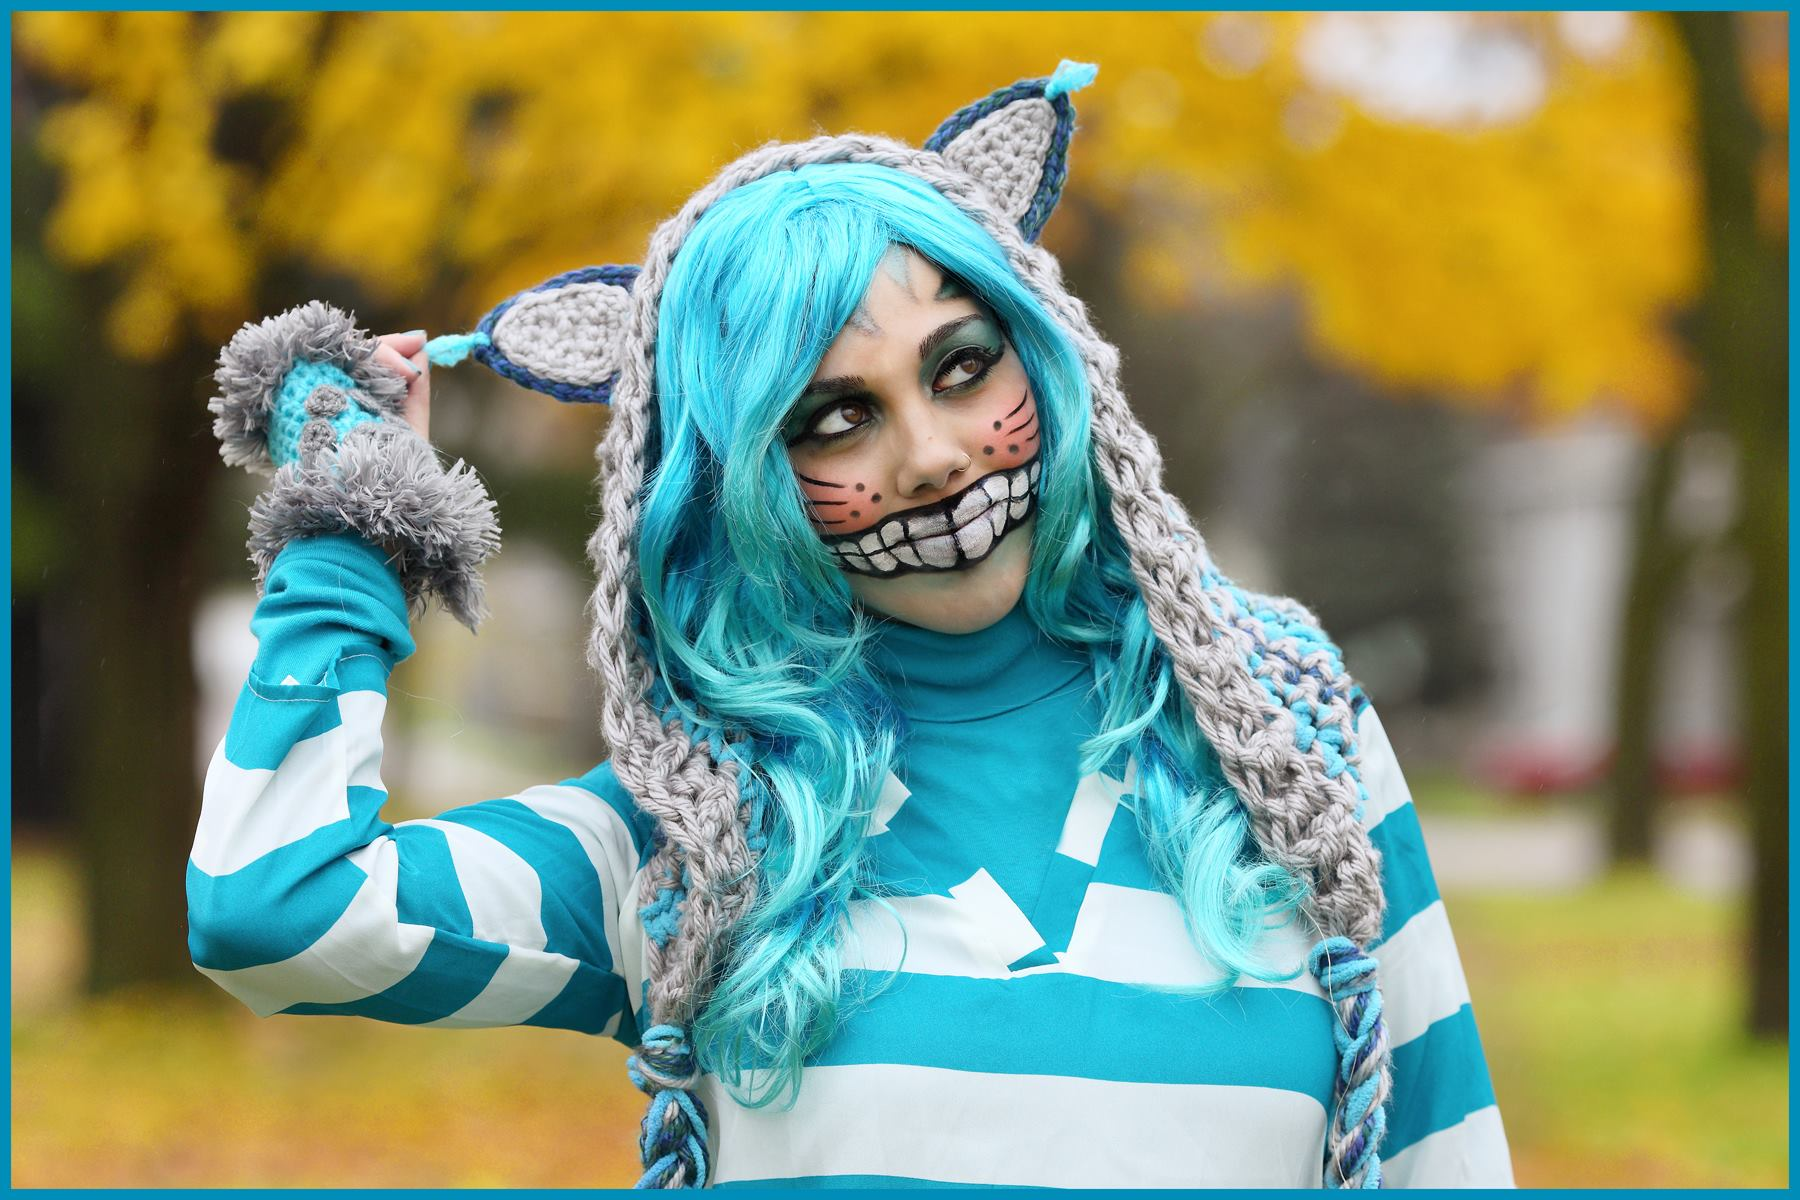 Crochet Tutorial: Cheshire Cat Hoodie « YARNutopia by Nadia Fuad